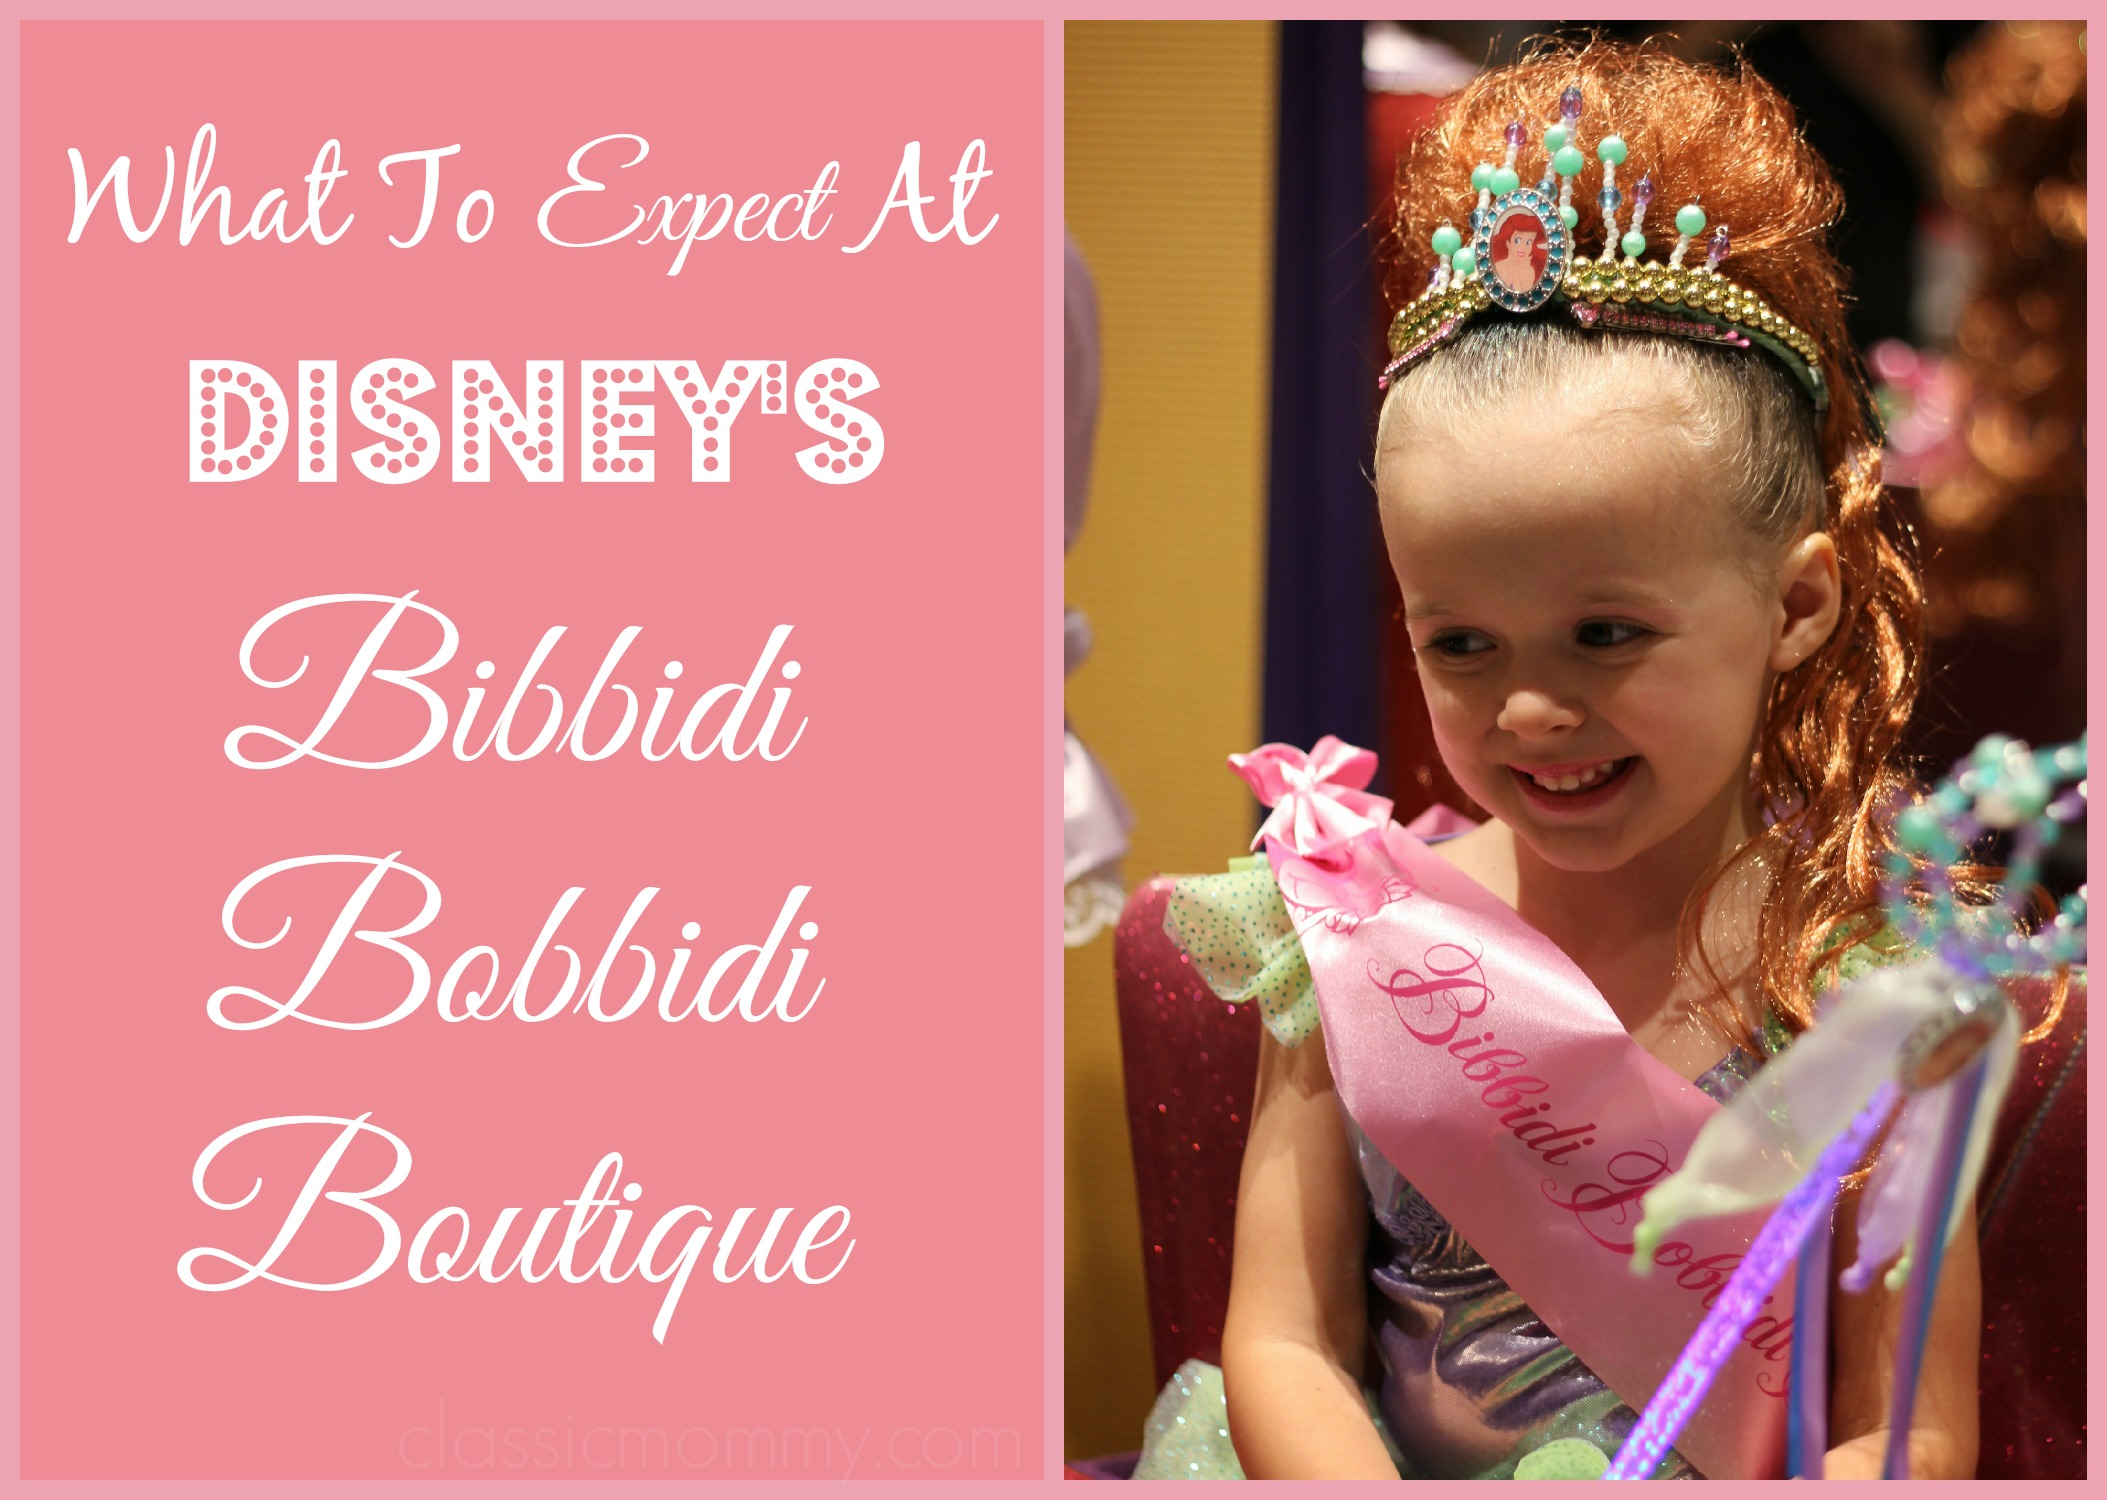 What to expect at Disney's Bibbidi Bobbidi Boutique